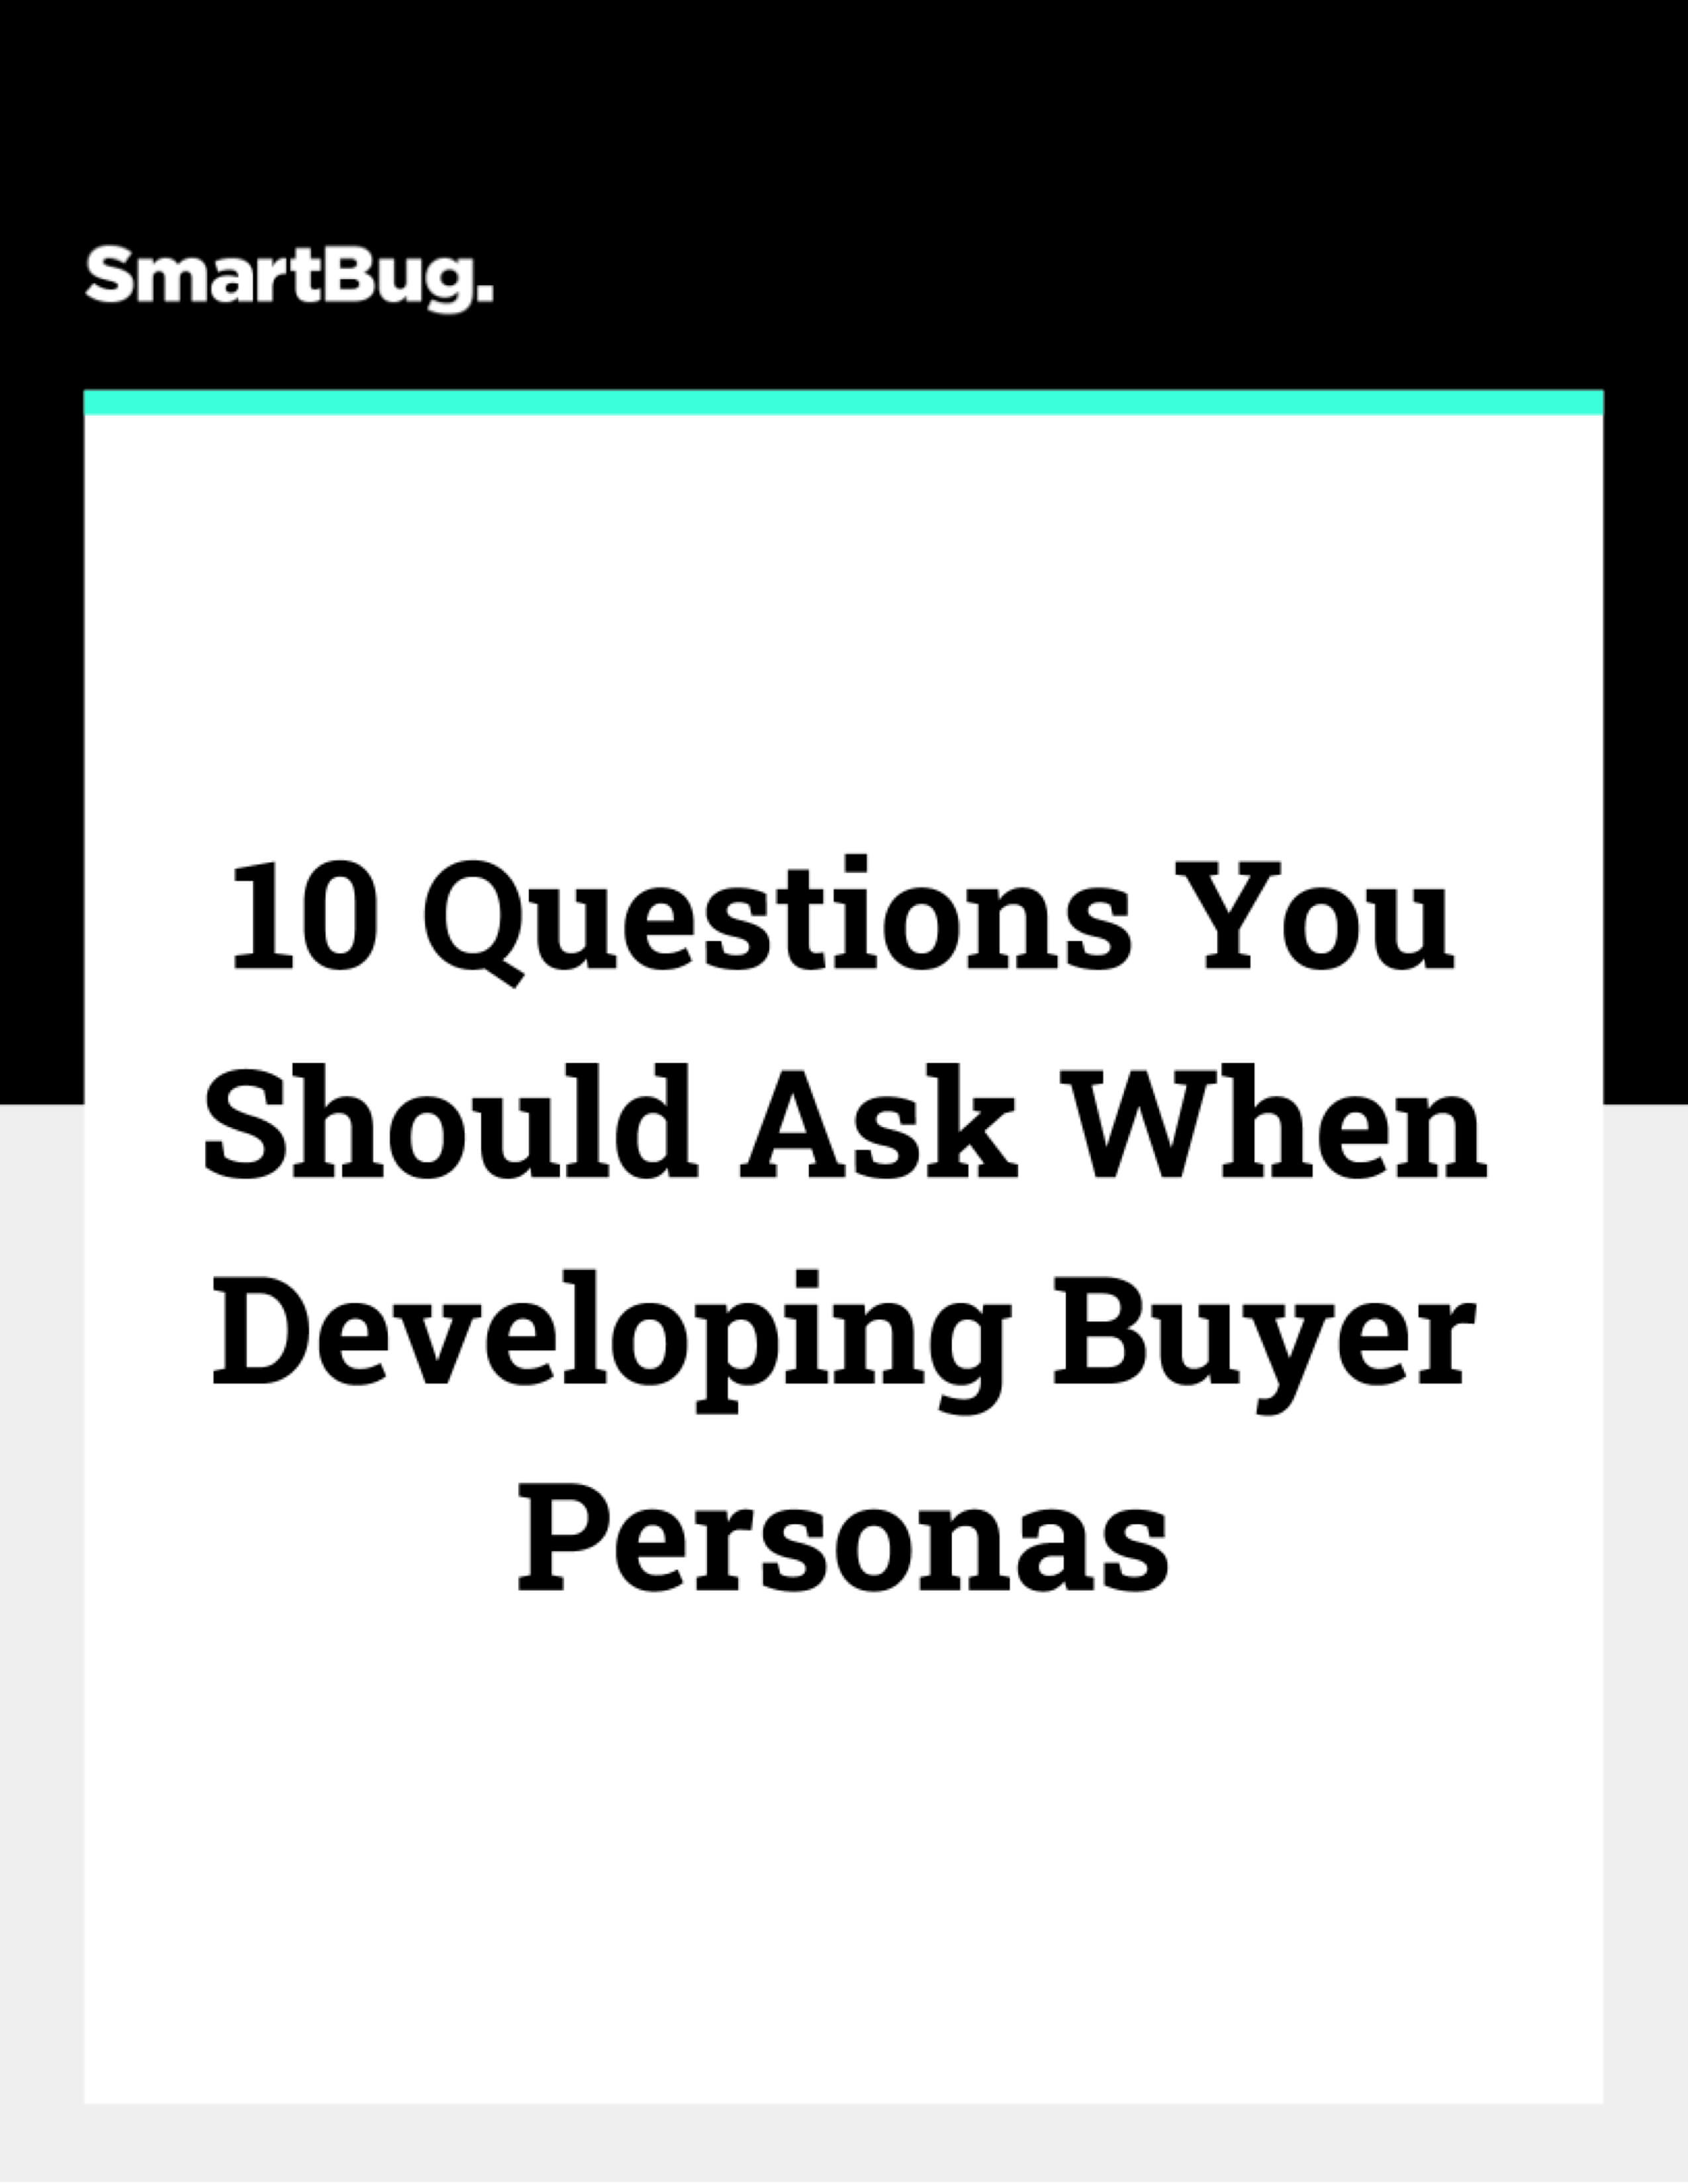 10 Questions You Should Ask When Developing Buyer Personas